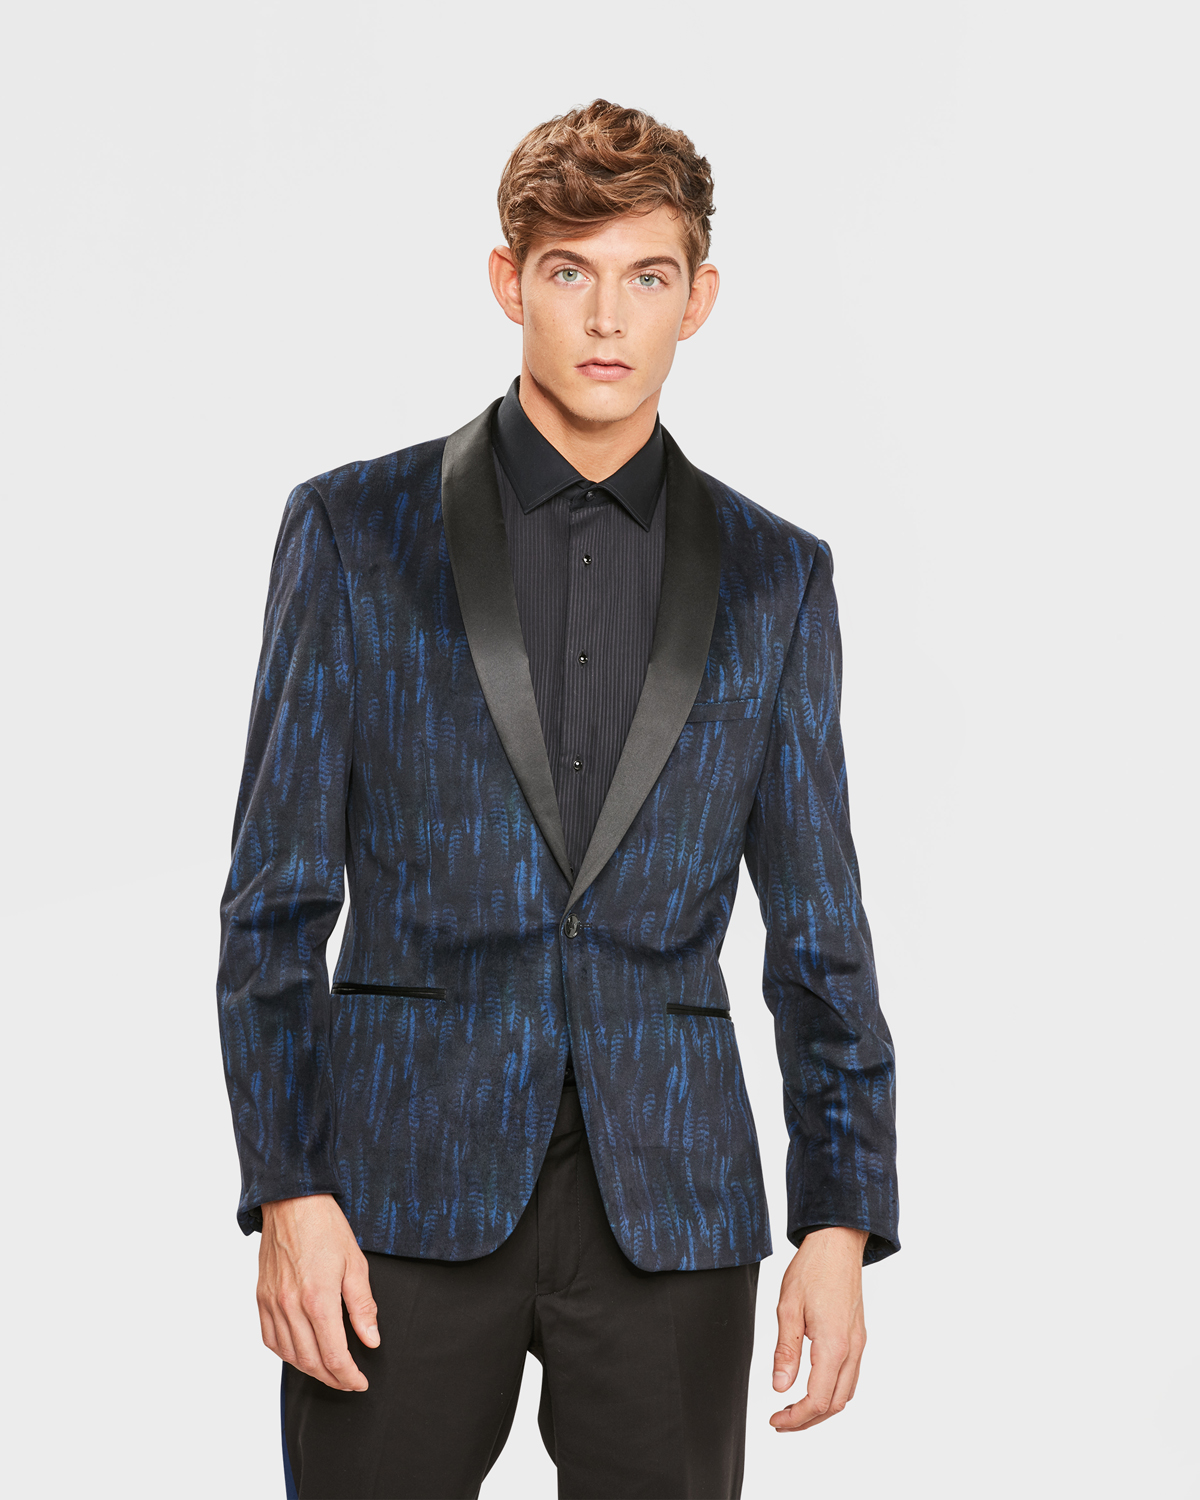 Shop Alton Lane's selection of custom blazers, featuring premium fabrics and a fit tailored to your measurements and style.